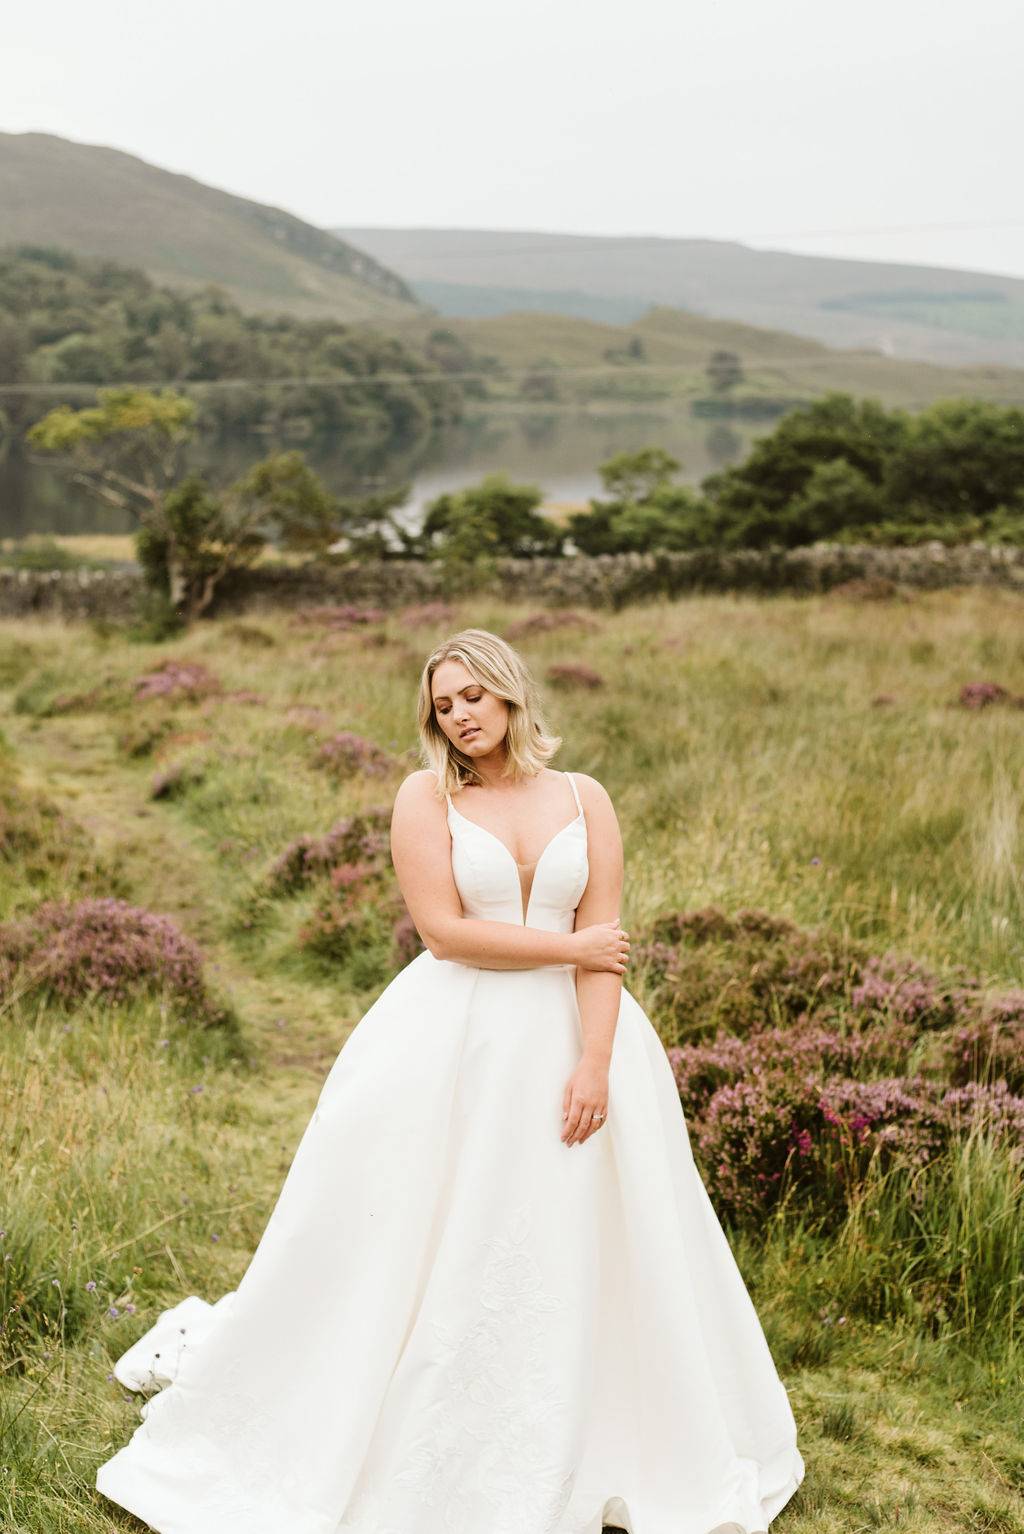 Bride standing in a field next to a lake surrounded by grasses and purple flowers wearing a mikado ballgown wedding dress with straps